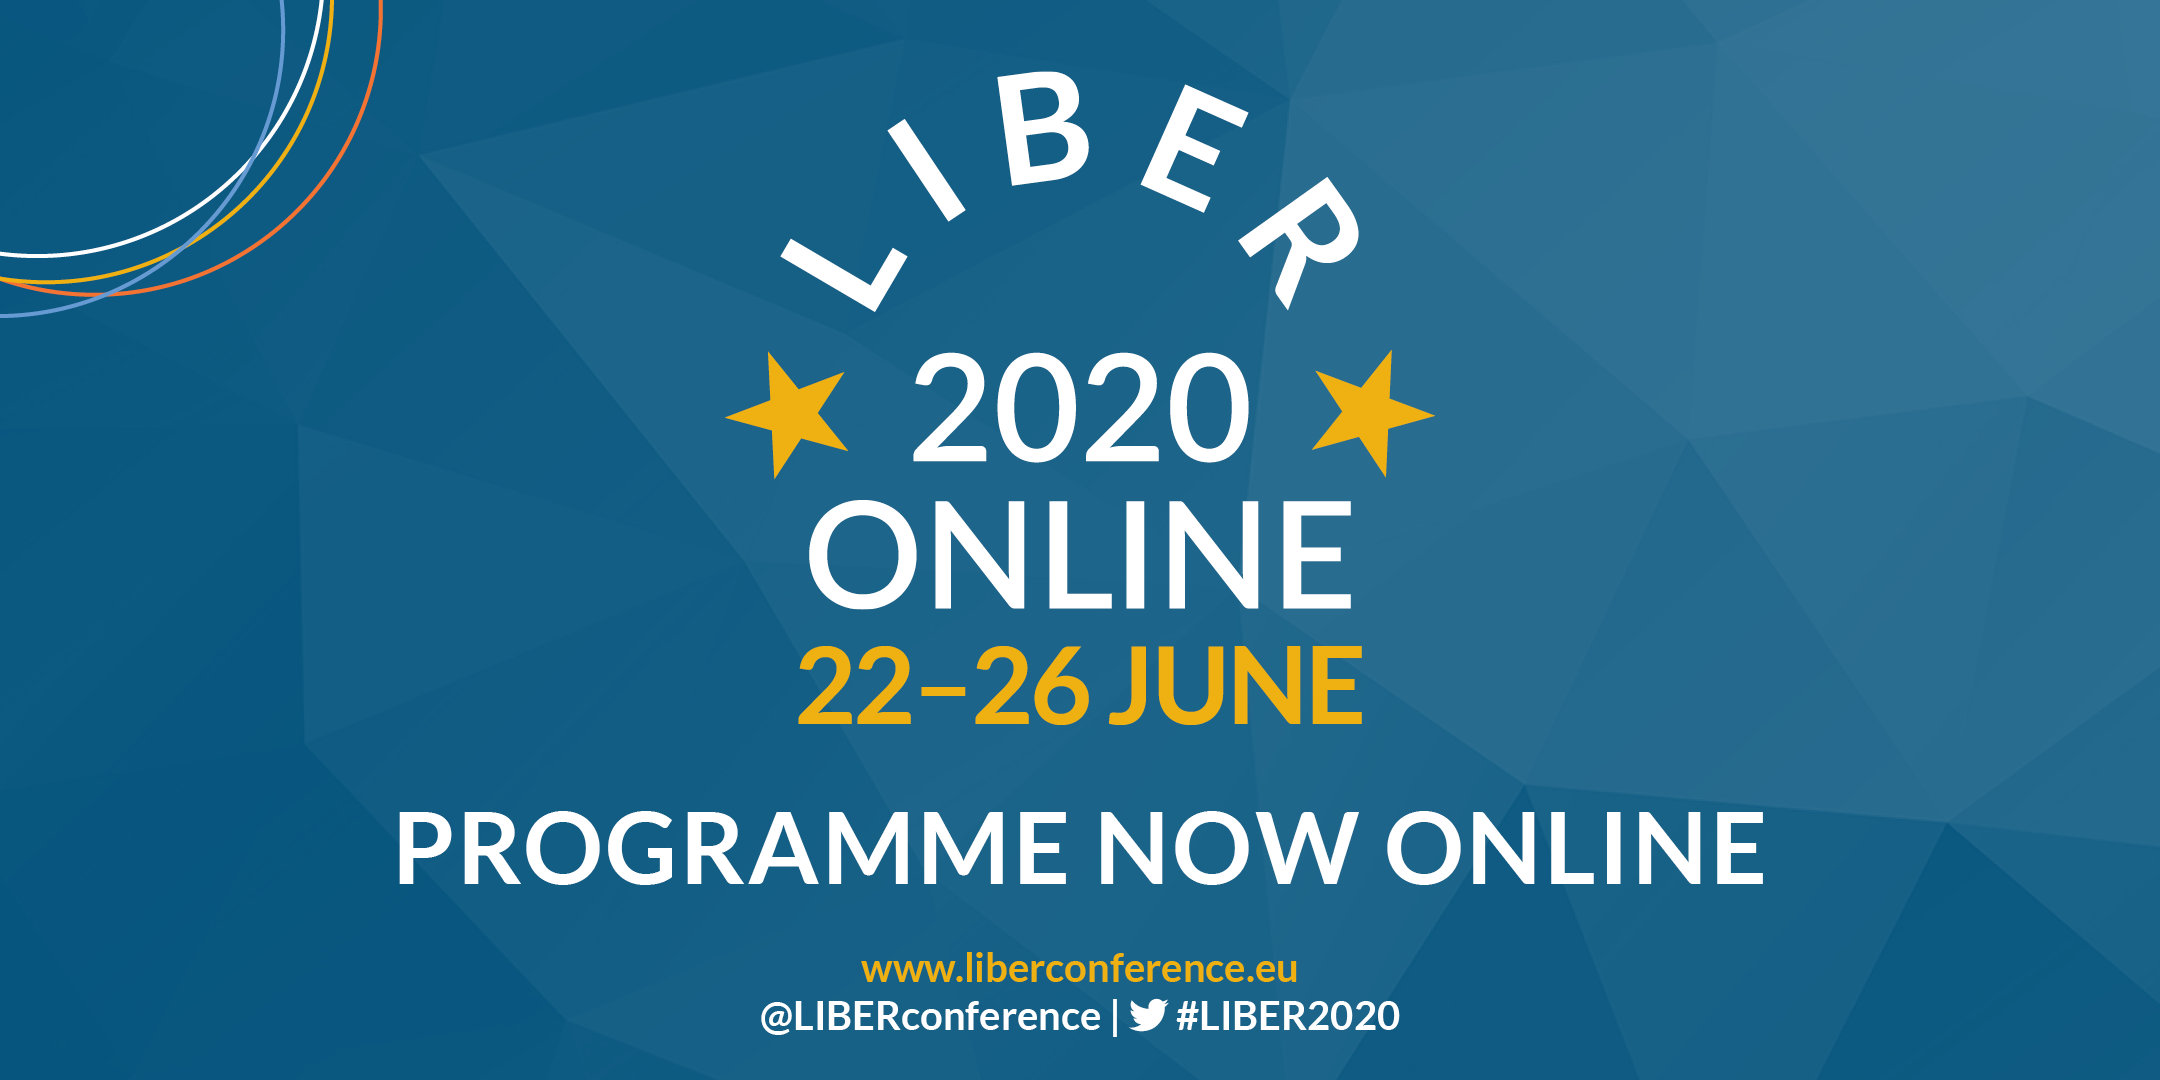 LIBER 2020 ONLINE Programme: Now Available!